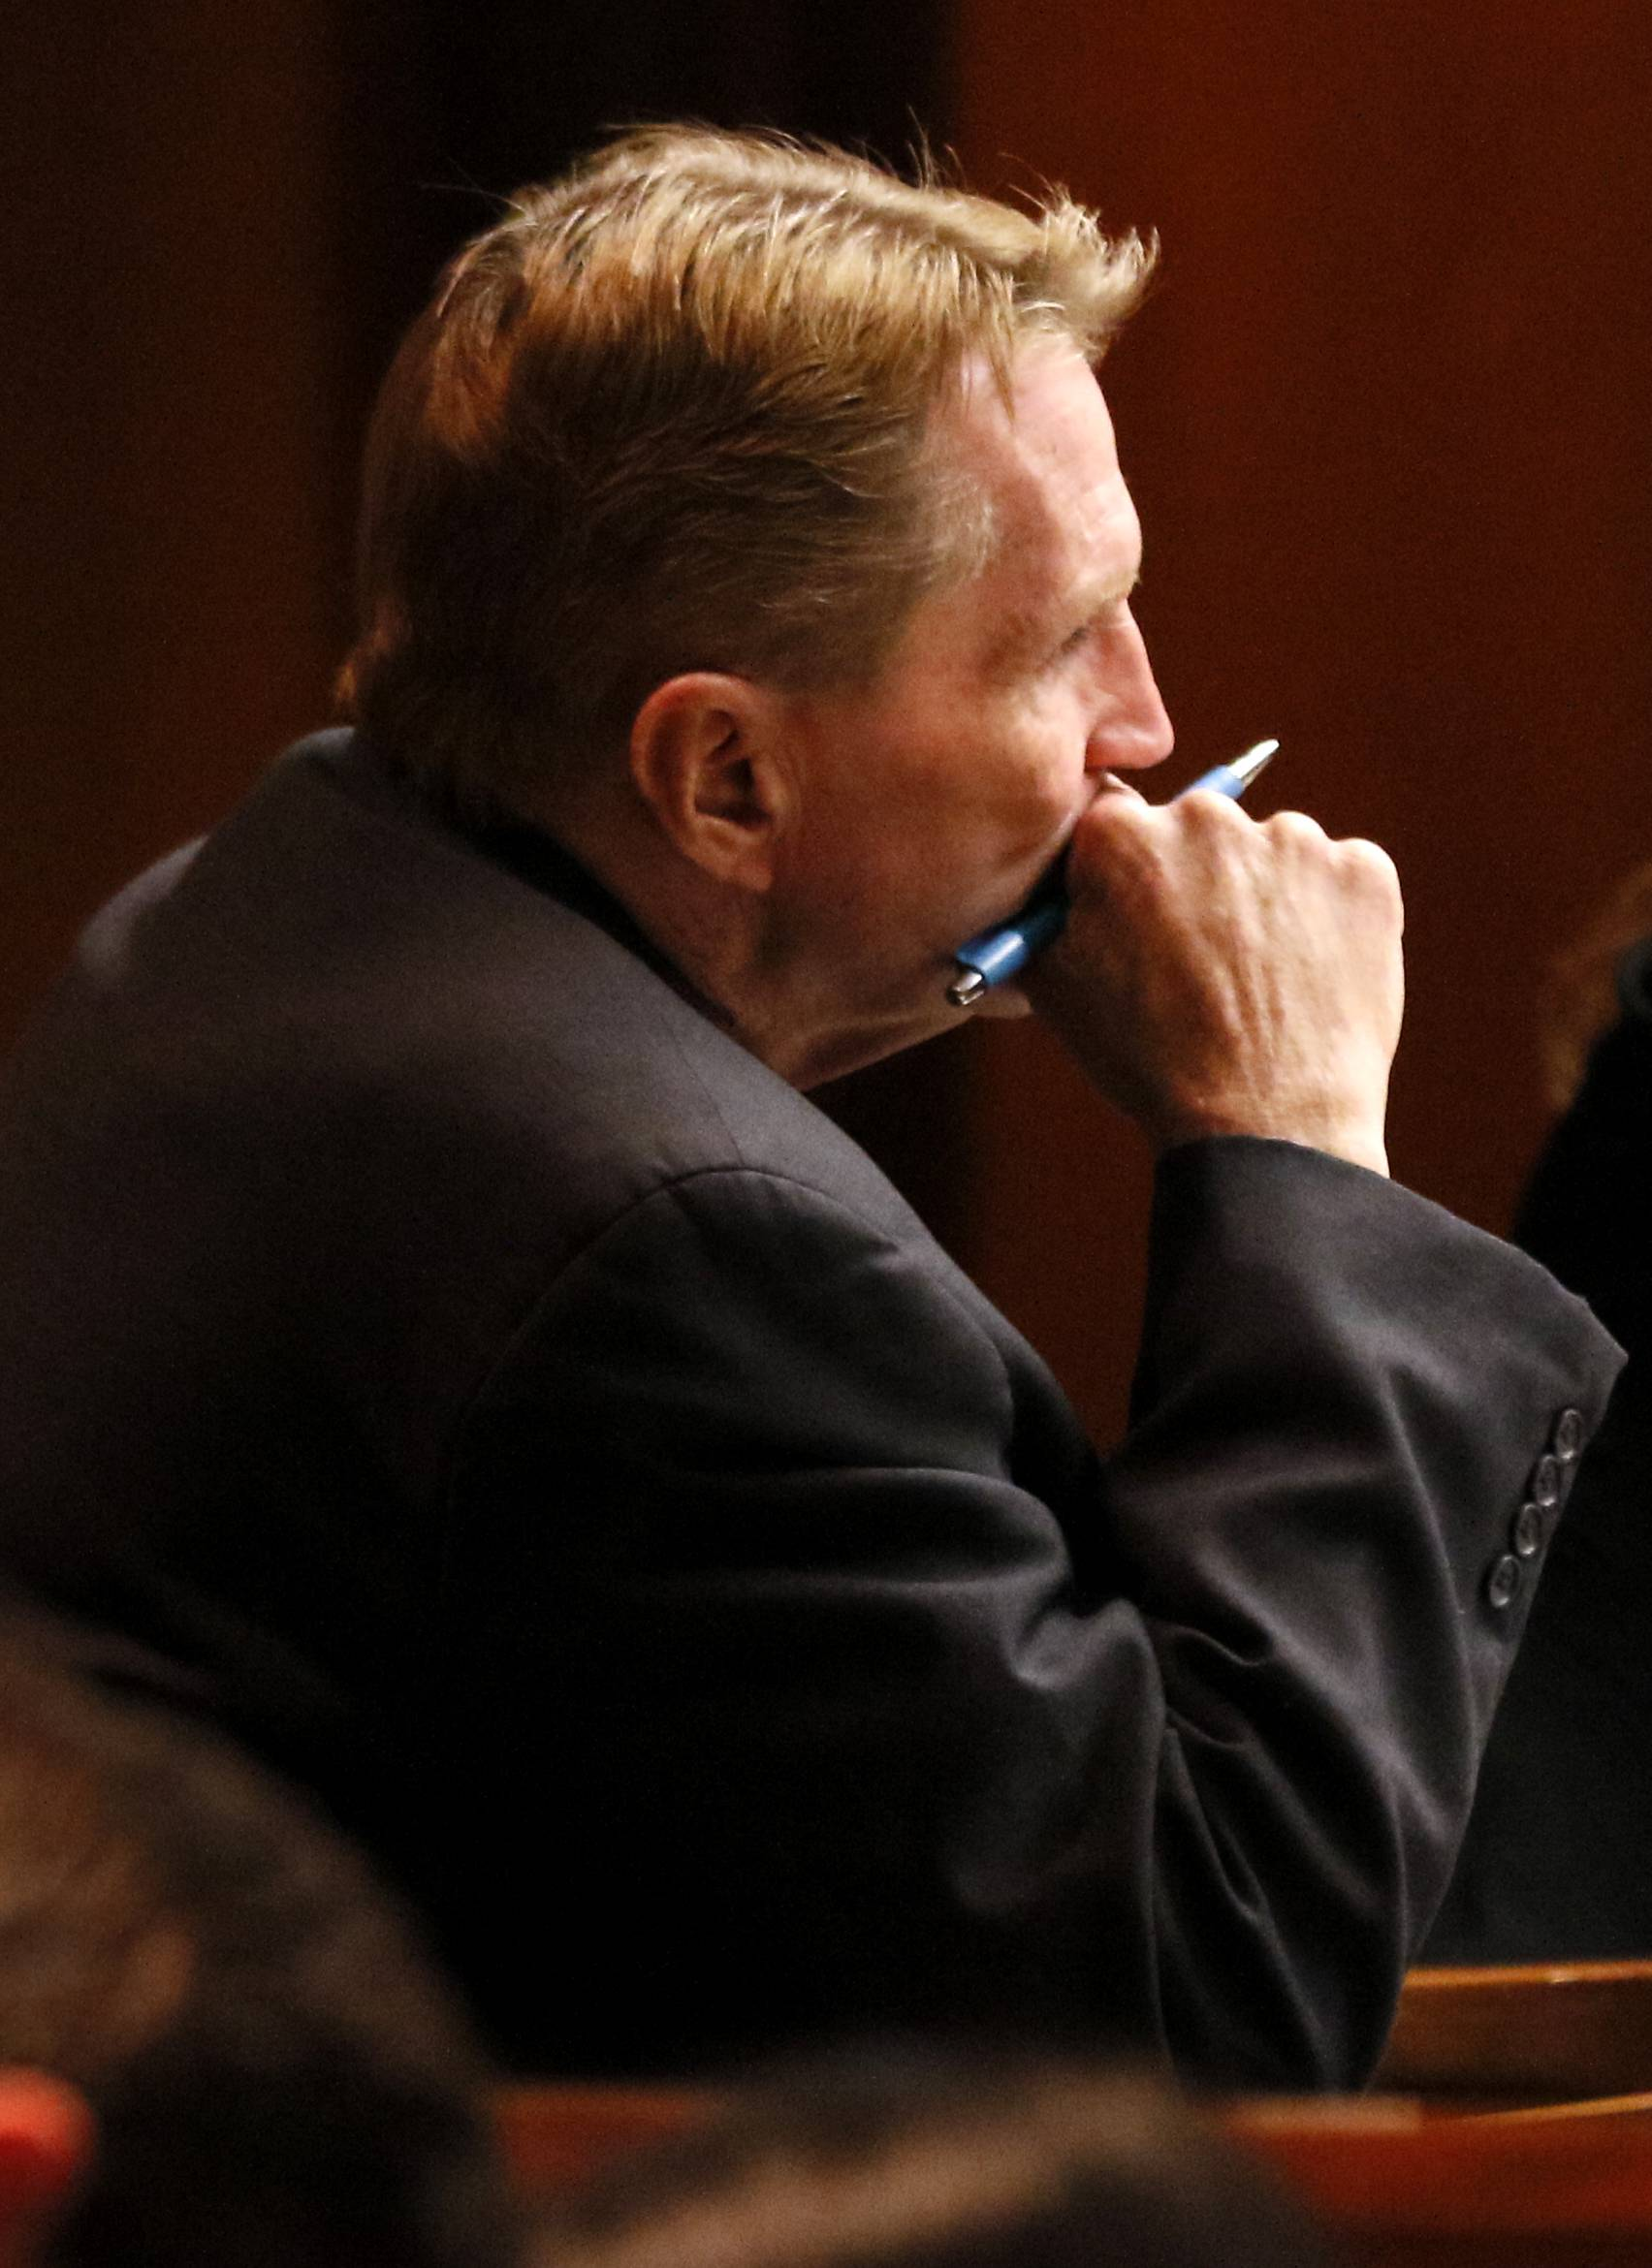 William Amor listens to opening statements at the DuPage County Courthouse in Wheaton on Wednesday, January 24, 2018. Amor is on trial for charges of first-degree murder and arson in the 1995 death of his mother-in-law in Naperville.